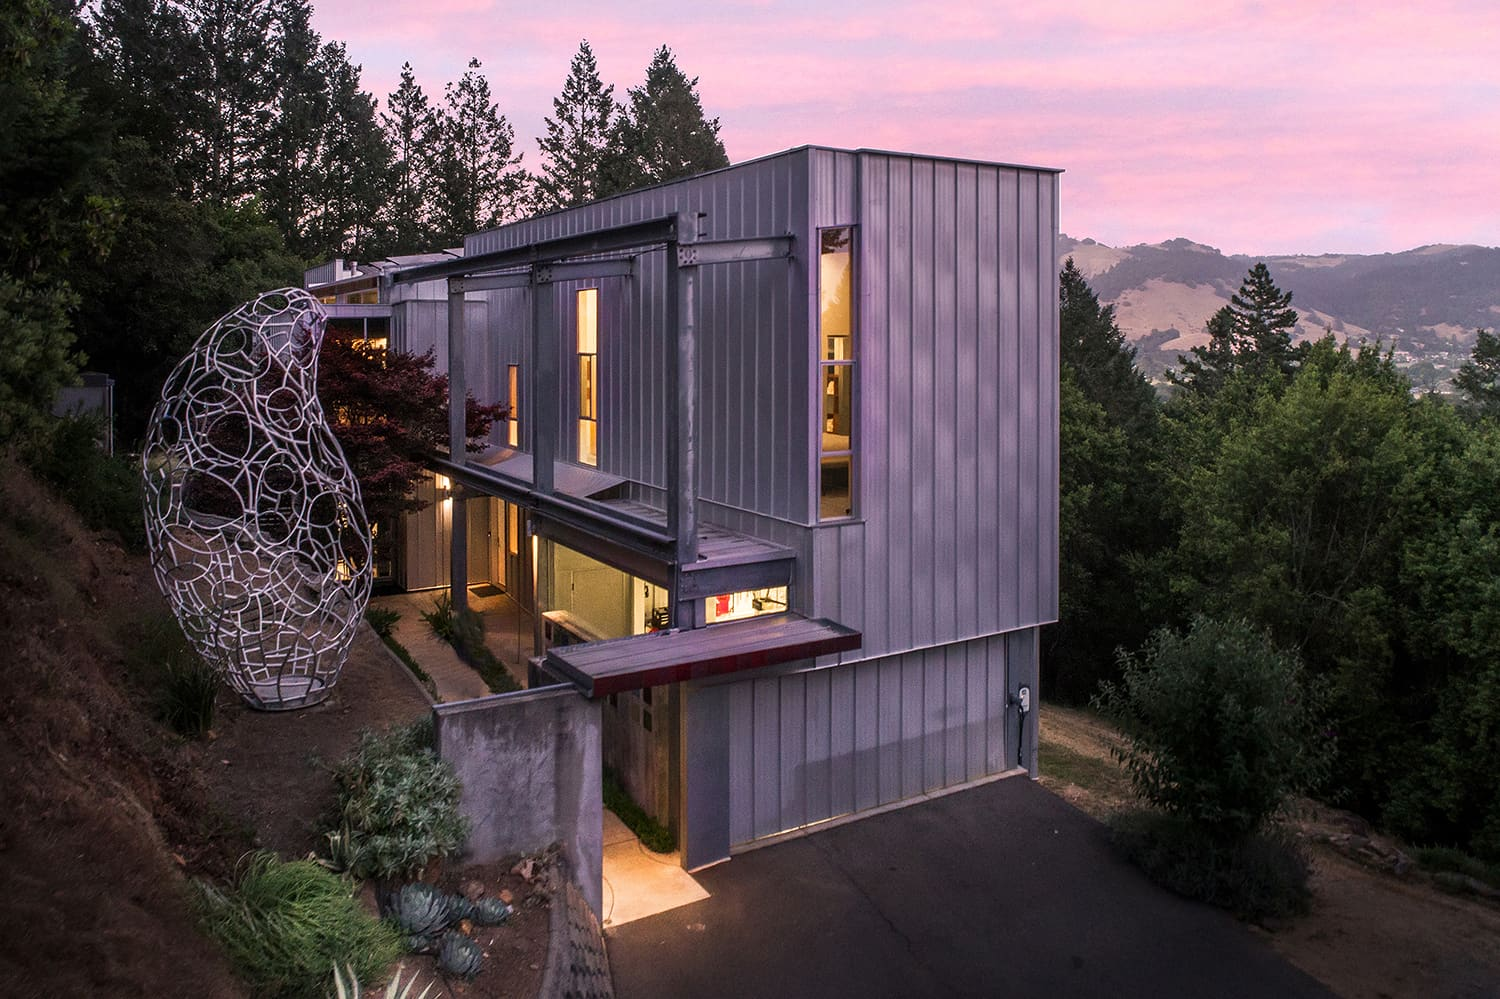 Look Inside: This $2.3M Hillside Home Has an Wow-Worthy Floating Staircase